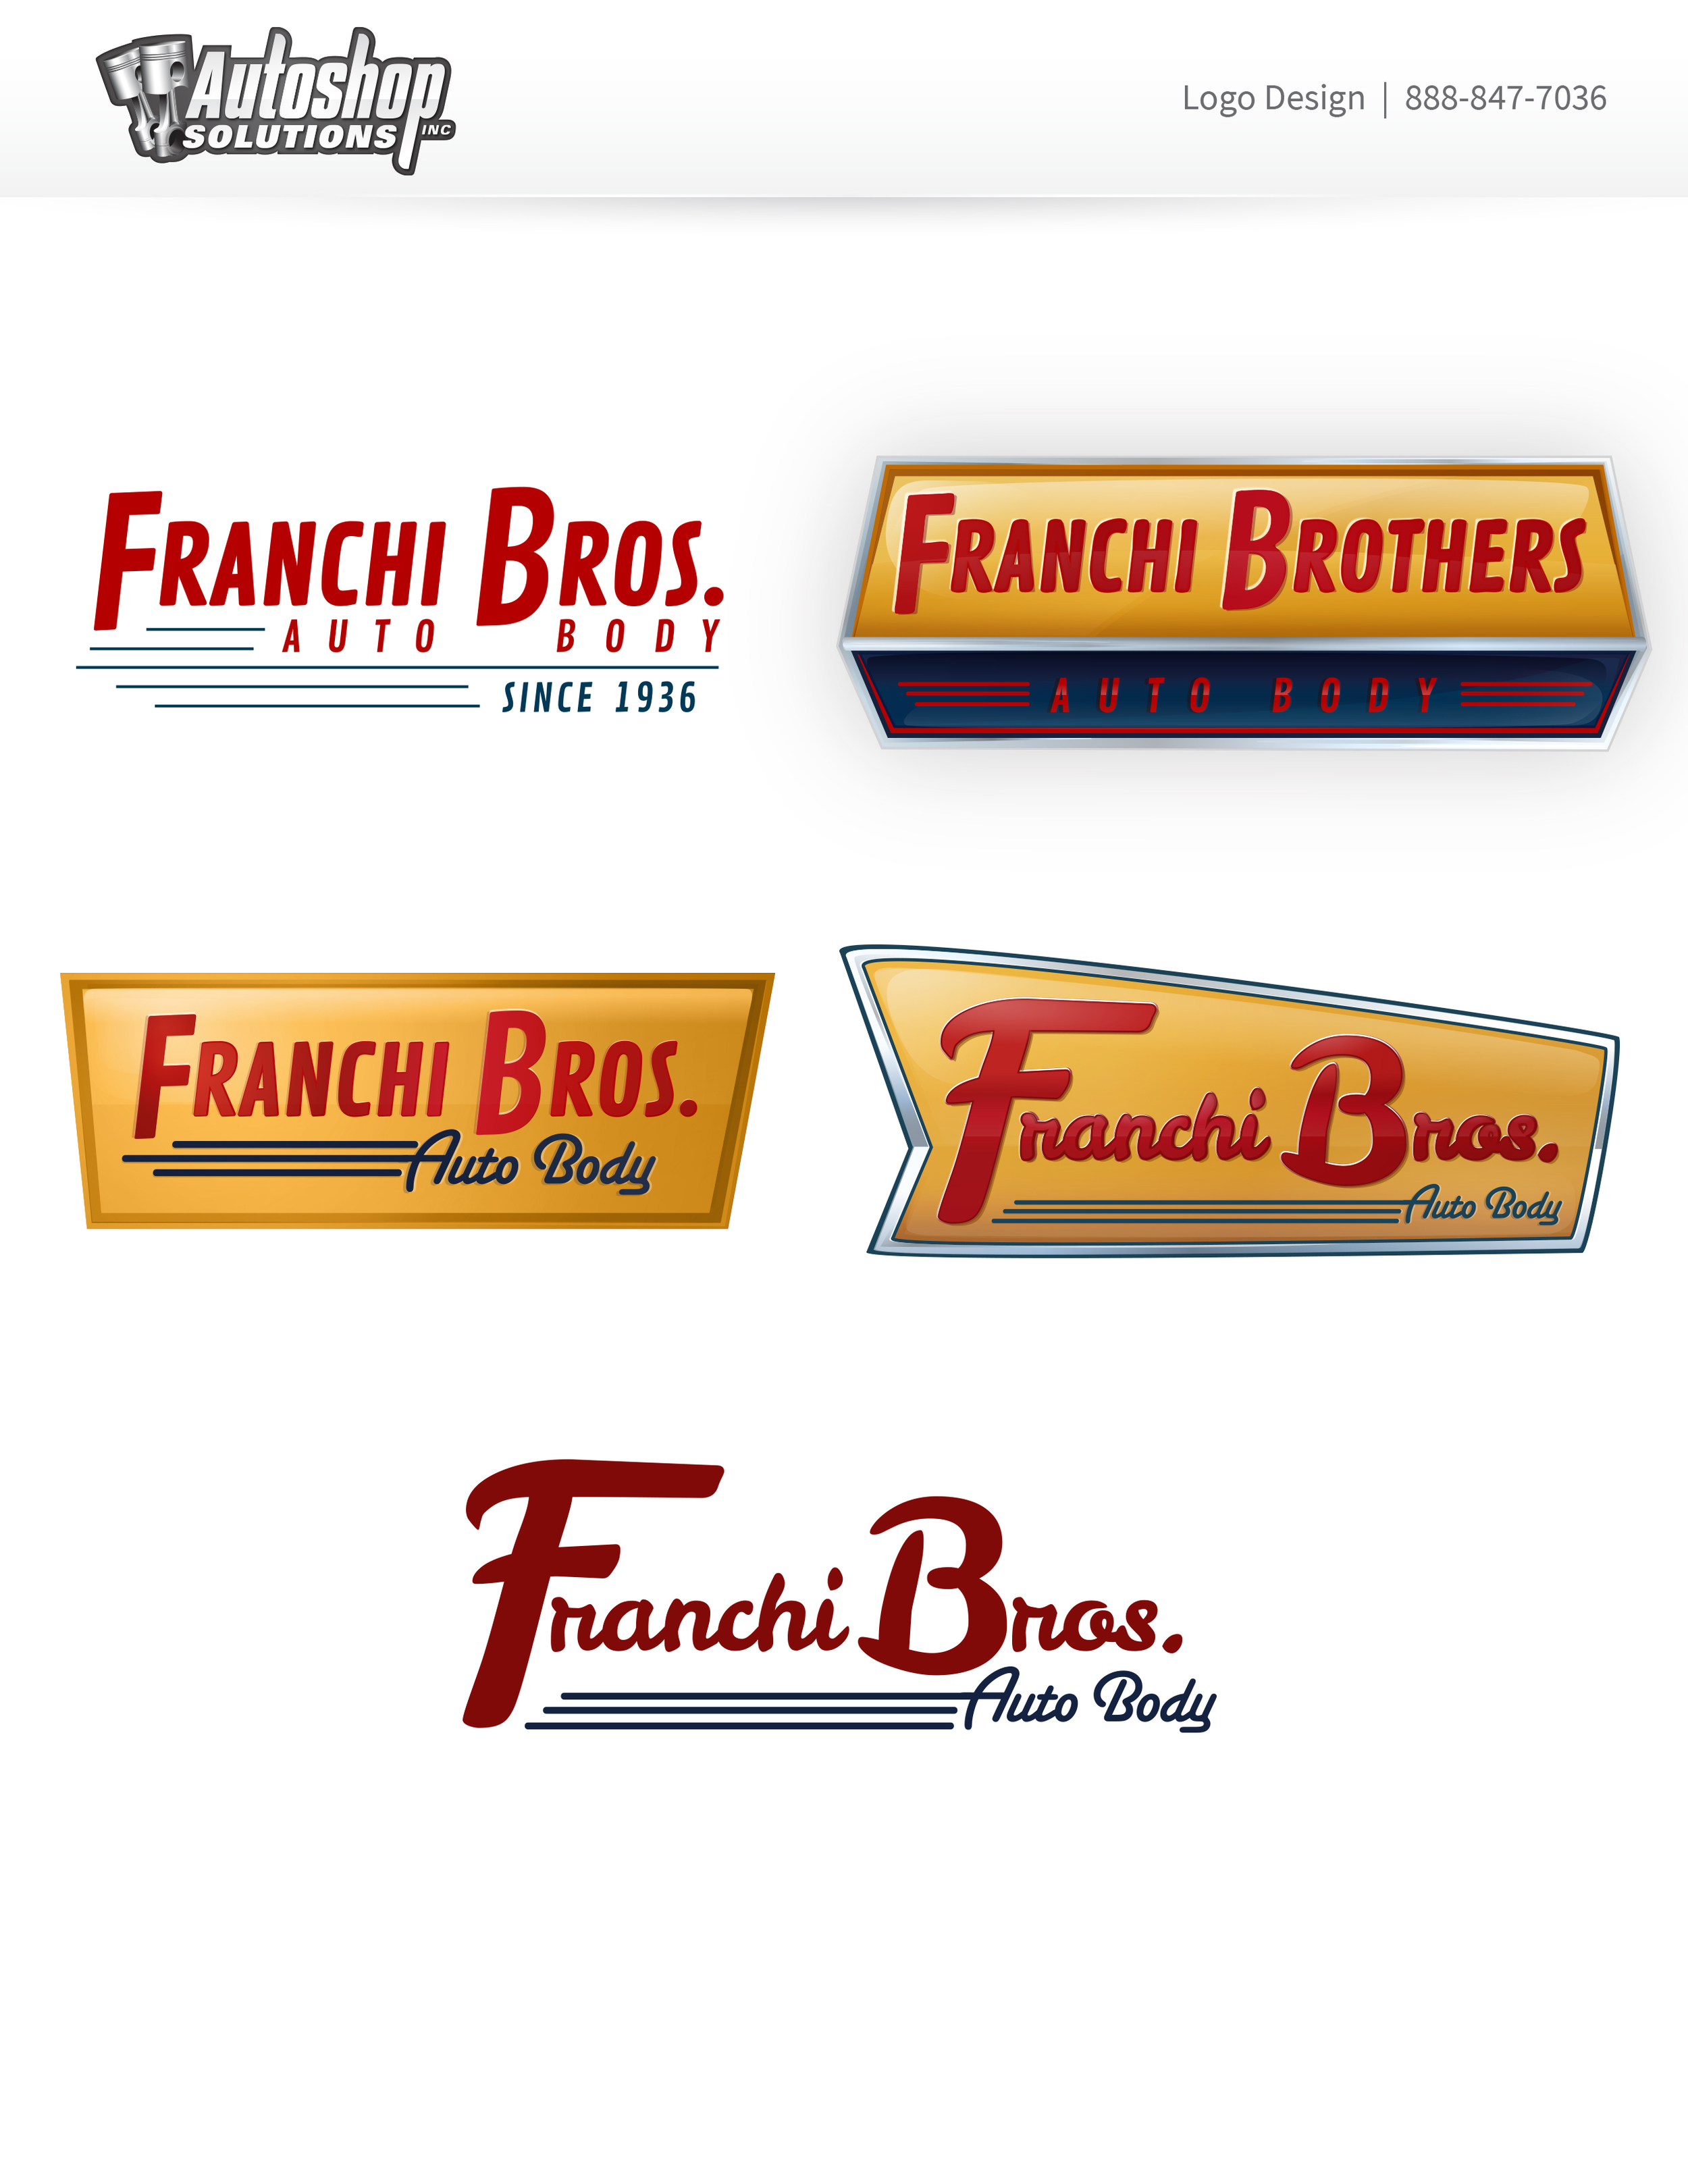 Franchi Brothers Auto Body - Phase 1